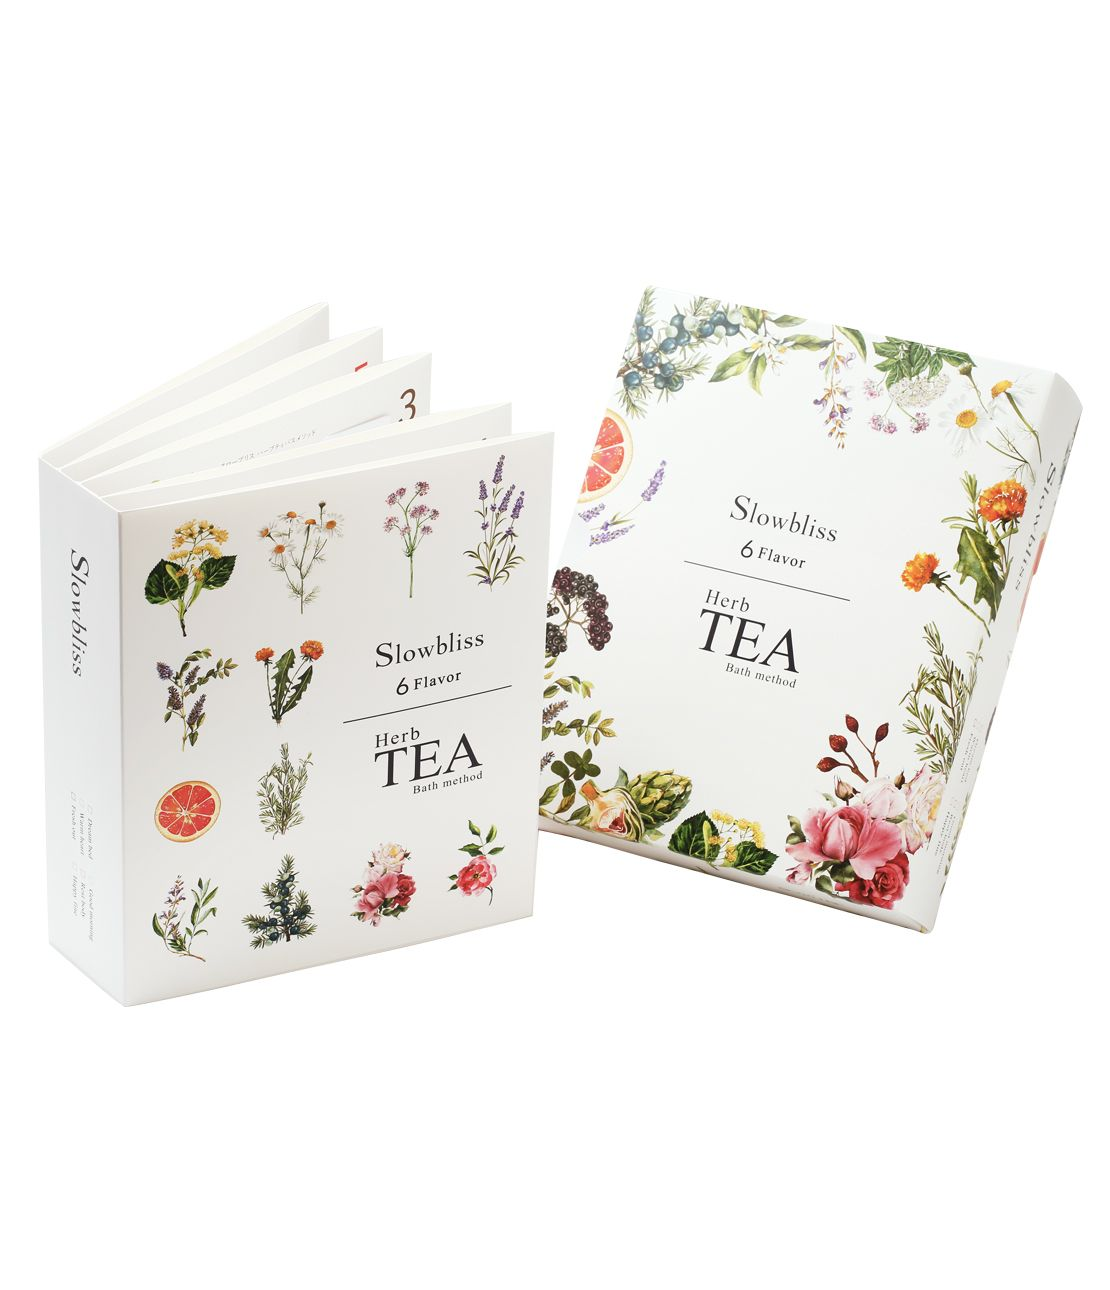 Slow Bliss Gift BOOK set